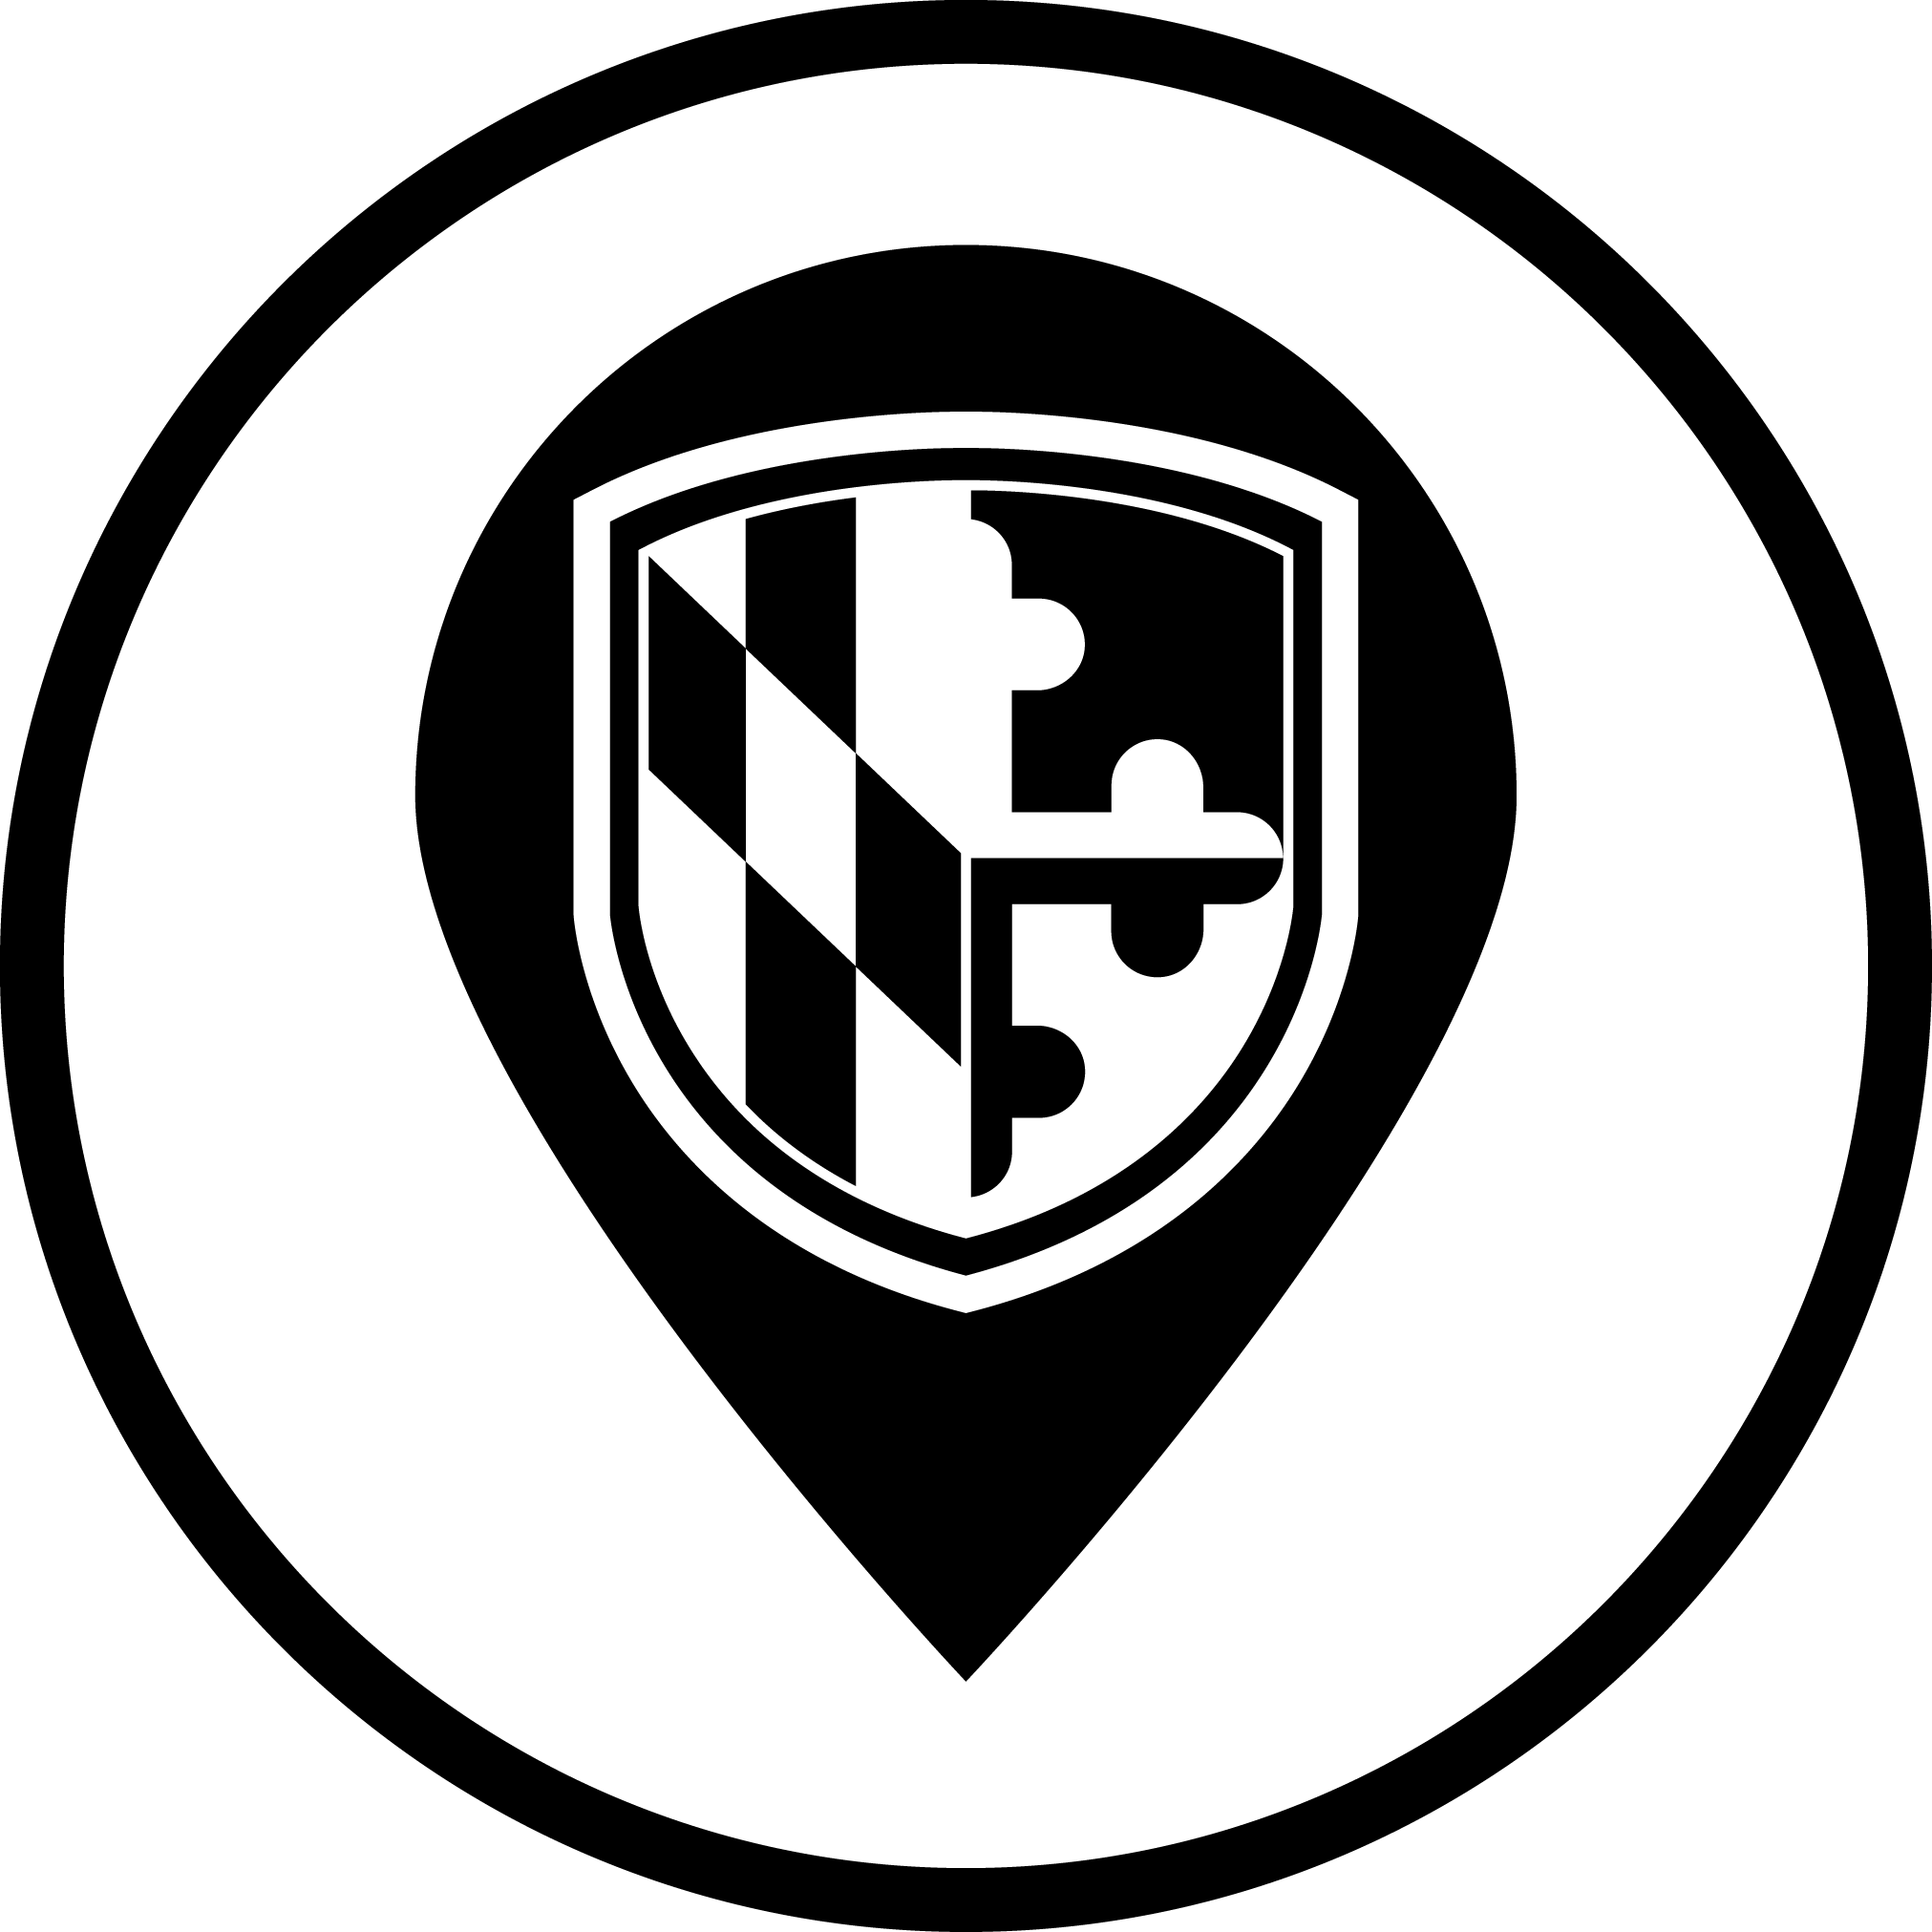 Icon of a location pin with the UMBC shield seal in the middle